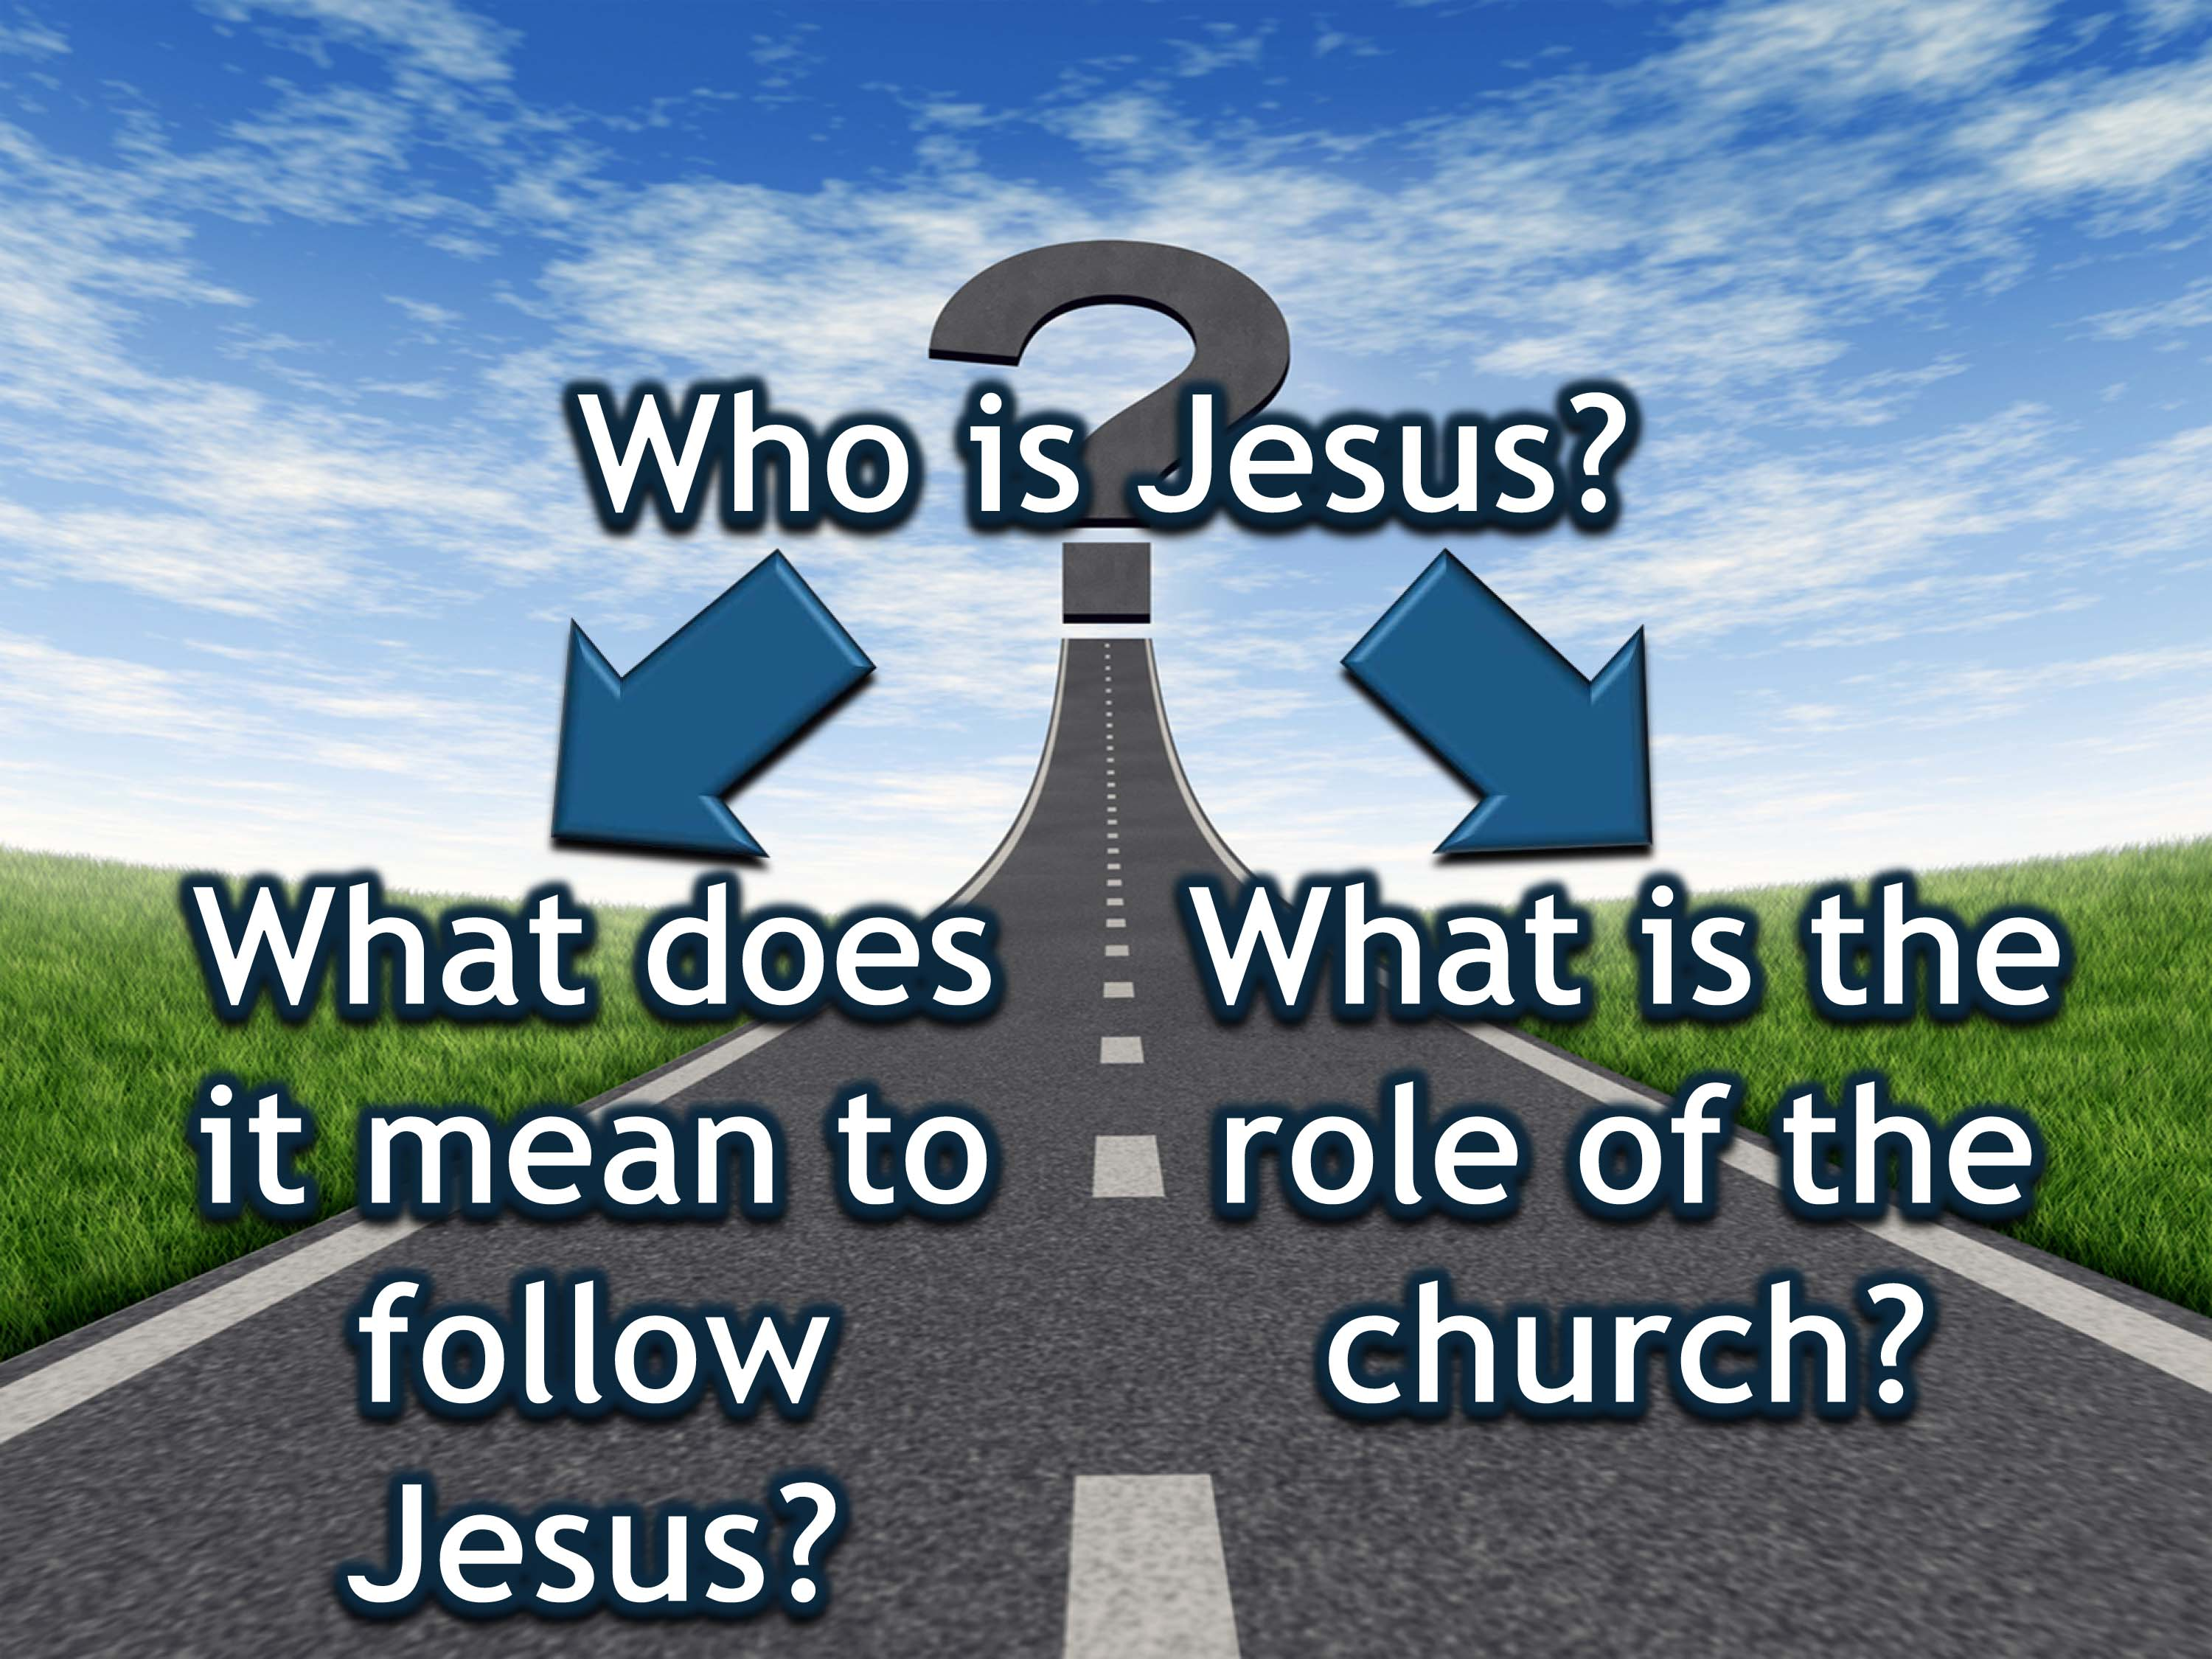 """the role and meaning of jesus miracles essay The 'i am' sayings prove jesus to be divine  now, for the purpose of this essay, it is the initial aim of john that i want to highlight as we have seen, john is seeking to prove that """" jesus is the christ, the son of god, the saviour of the world"""" (4:42)  which shed light on the meaning of the message behind the miracles that."""